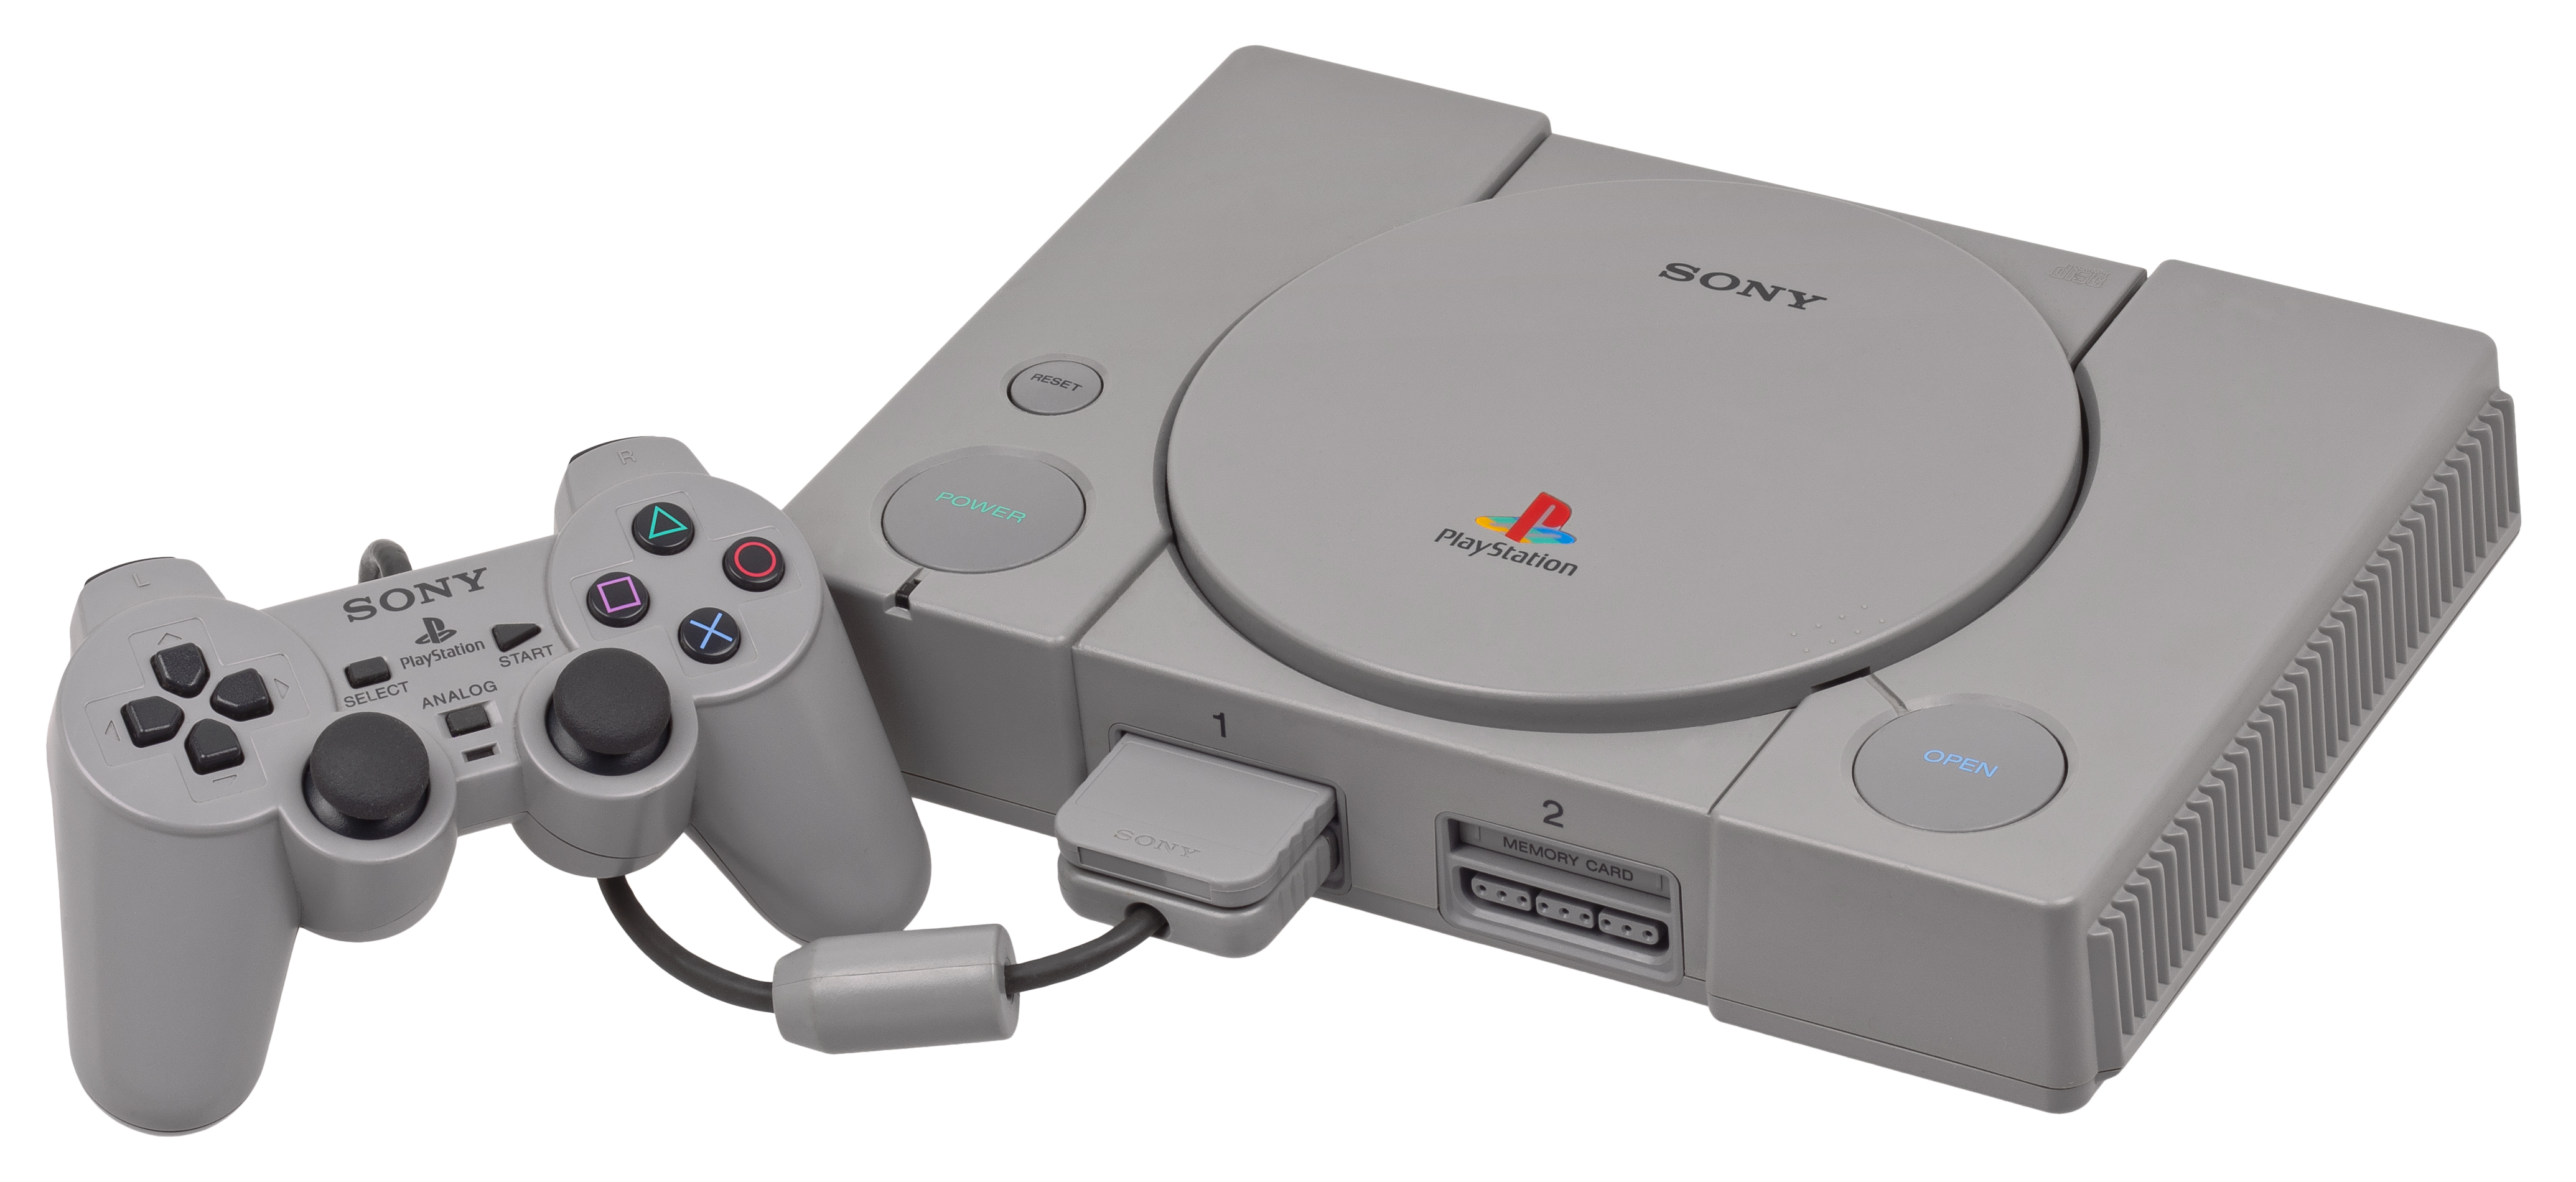 December 3, 1994: Sony's PlayStation Is Released In Japan